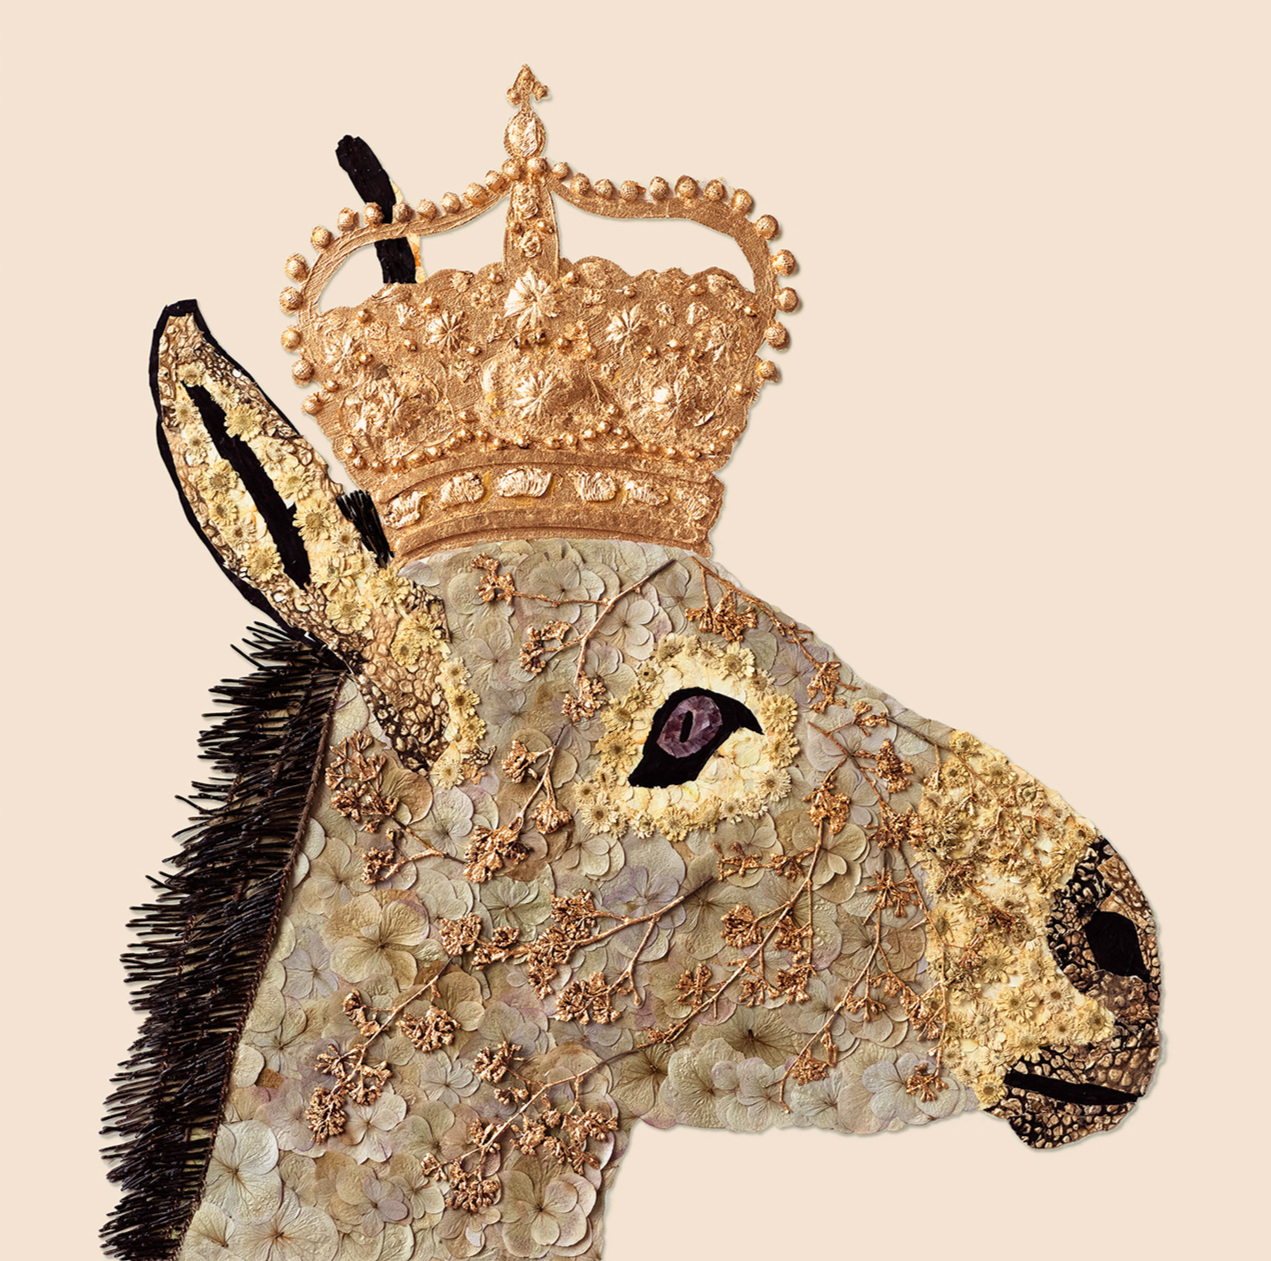 House of Royals / Charles The Donkey